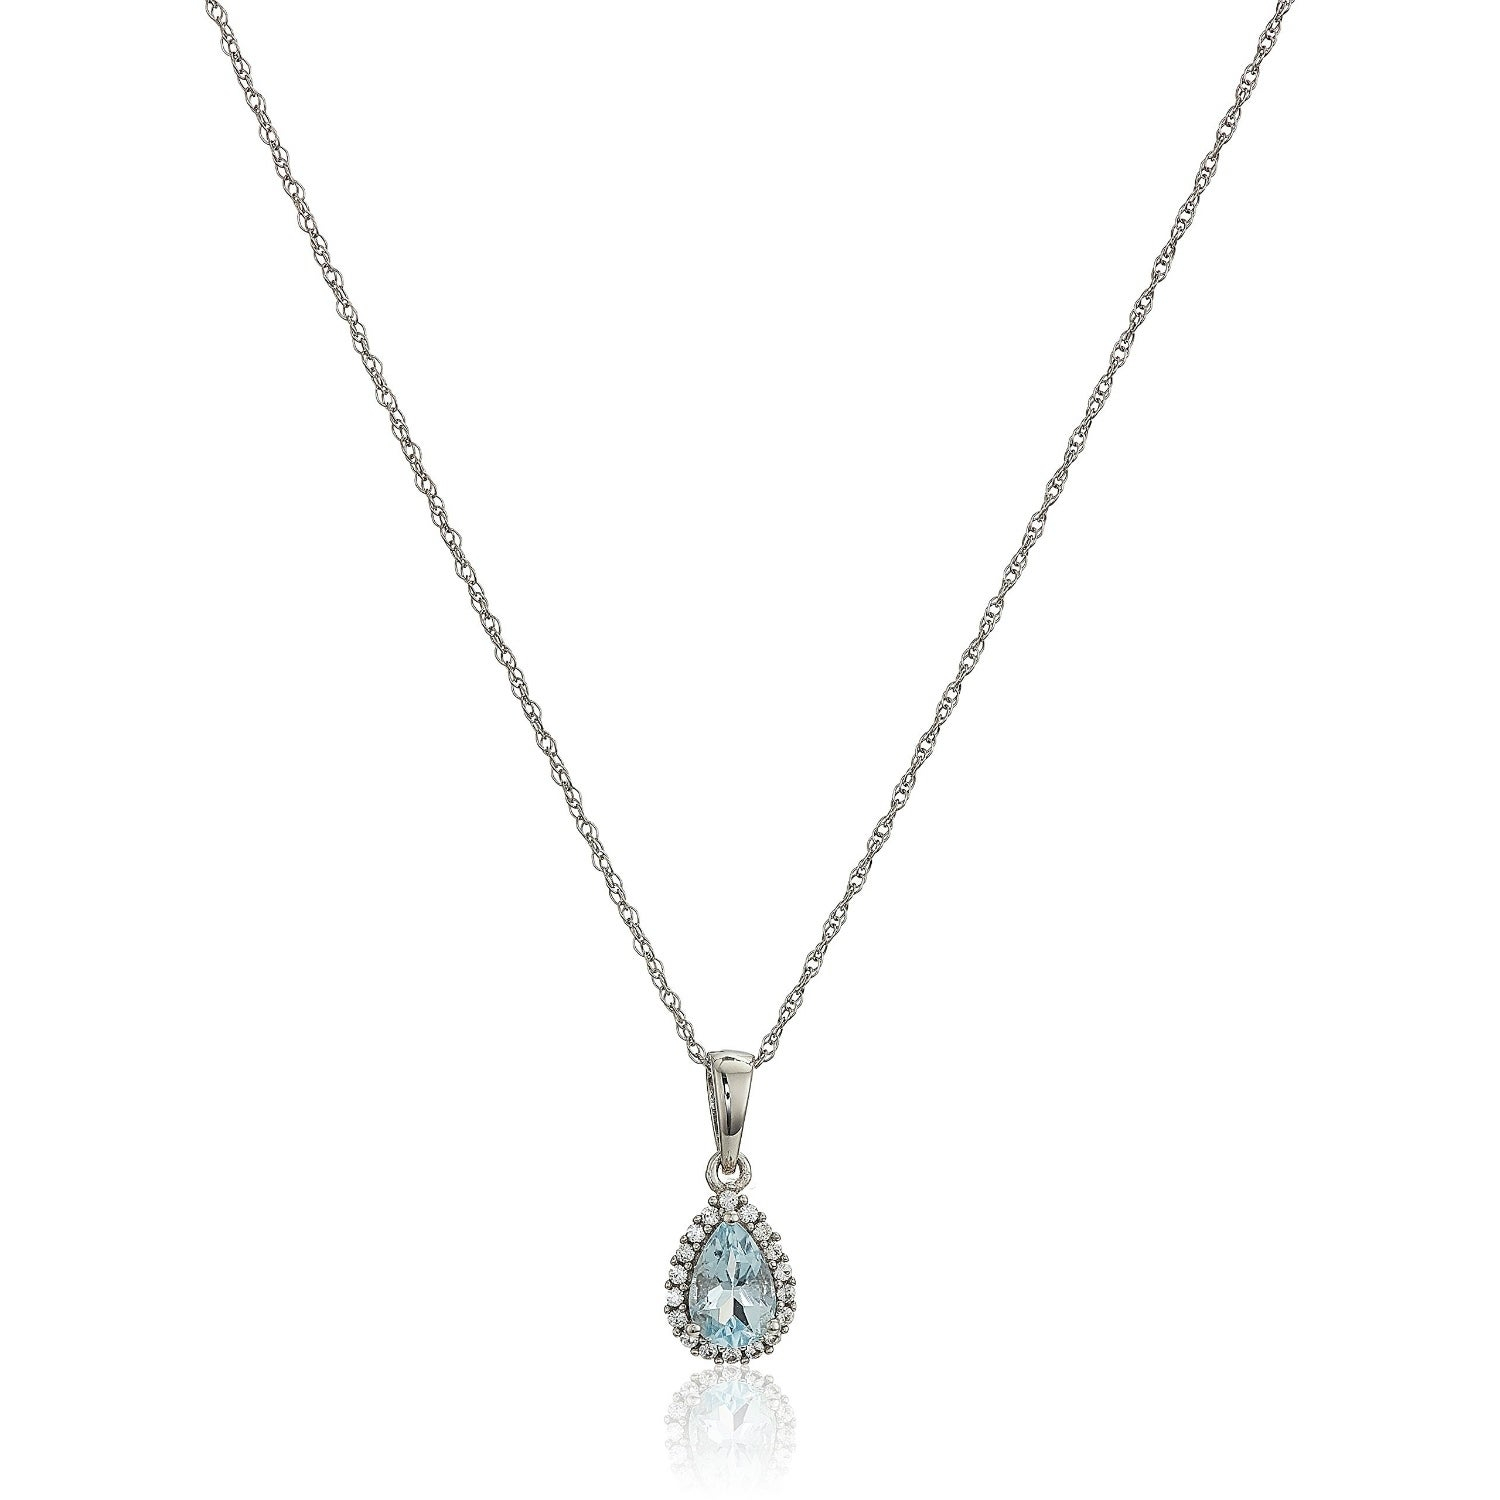 Pinctore 10K White Gold Aquamarine & Created White Sapphire Pendant  Necklace 18 In Most Recent Sapphire, Aquamarine And Diamond Necklaces (View 20 of 25)